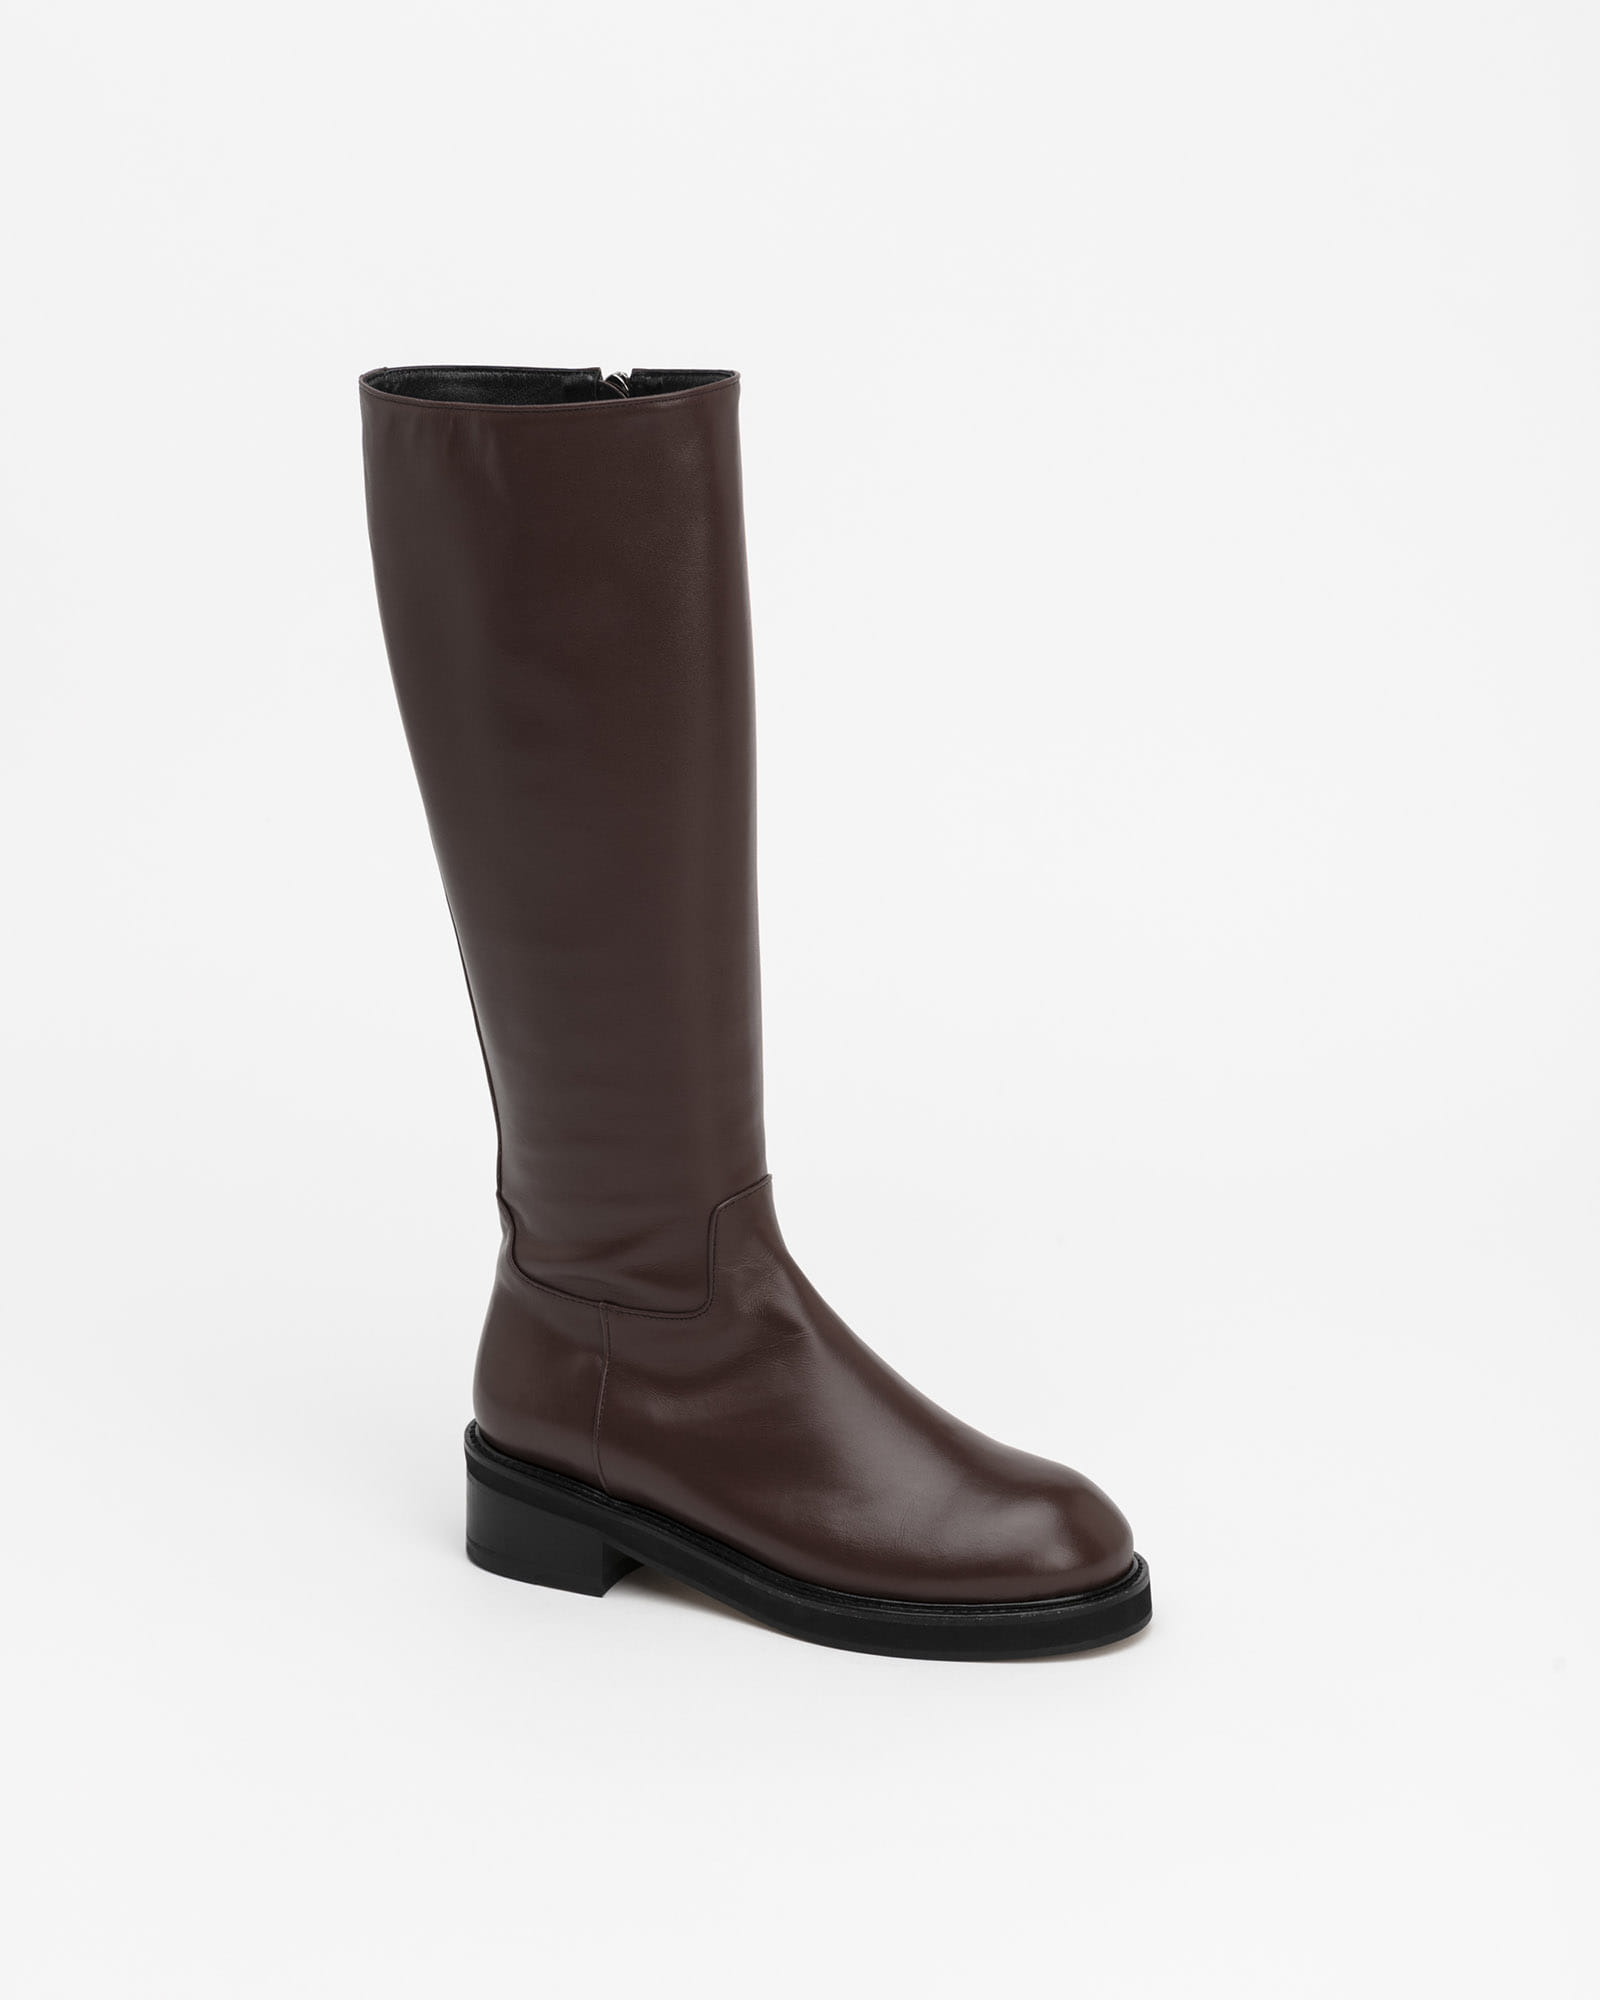 Bait Riding Boots in Tender Brown